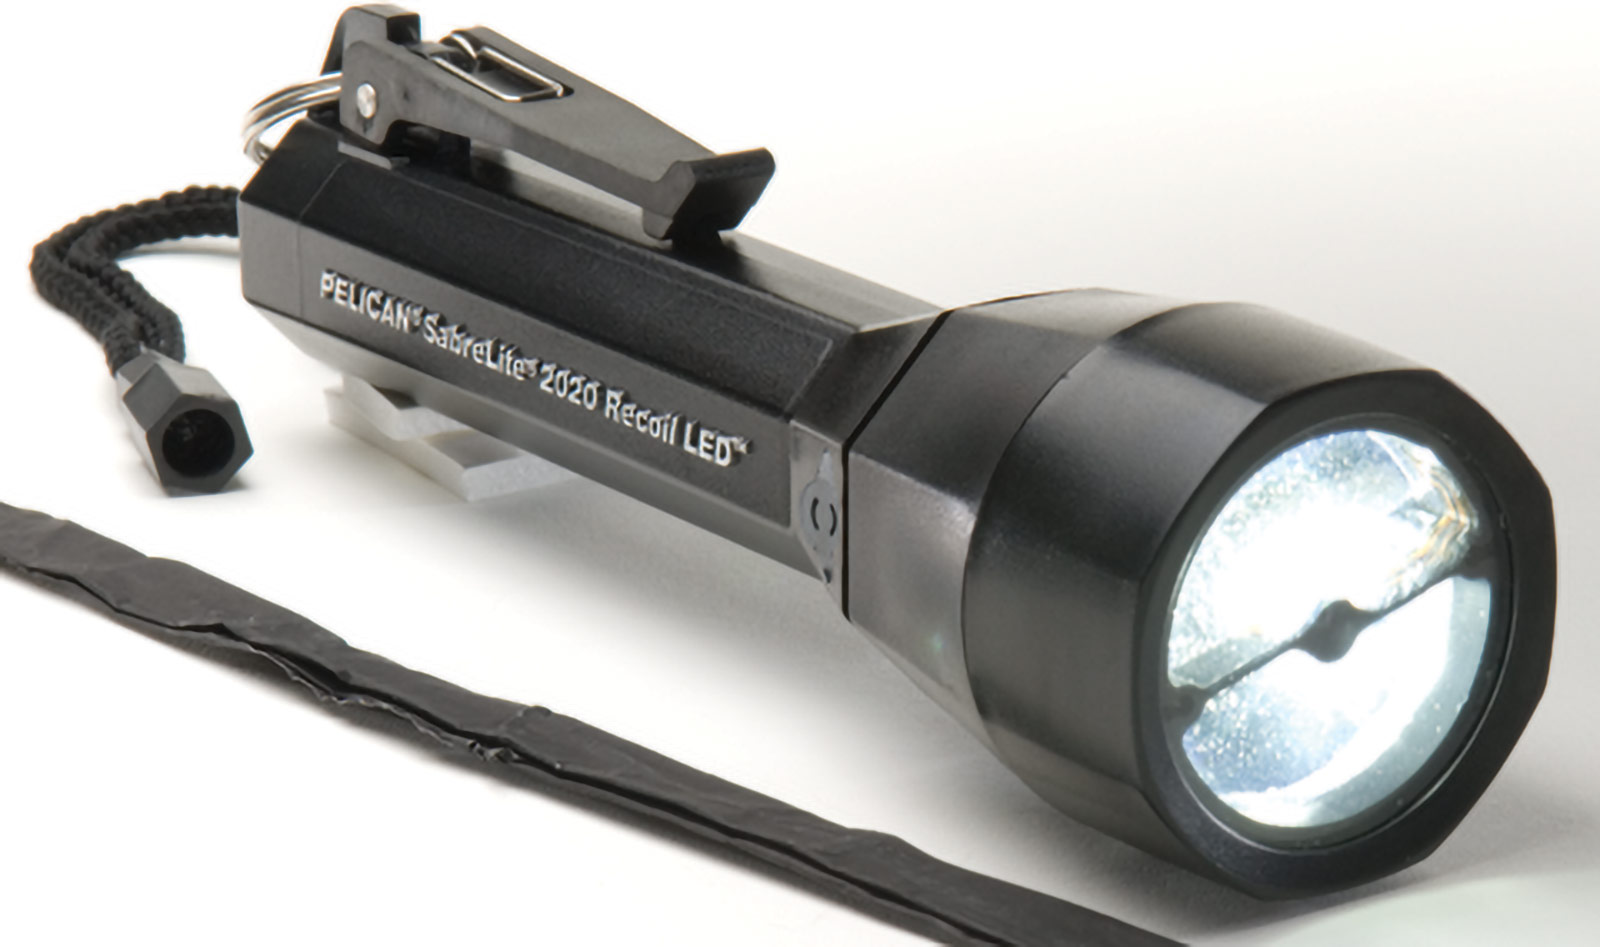 pelican 2020 regulated recoil led flashlight